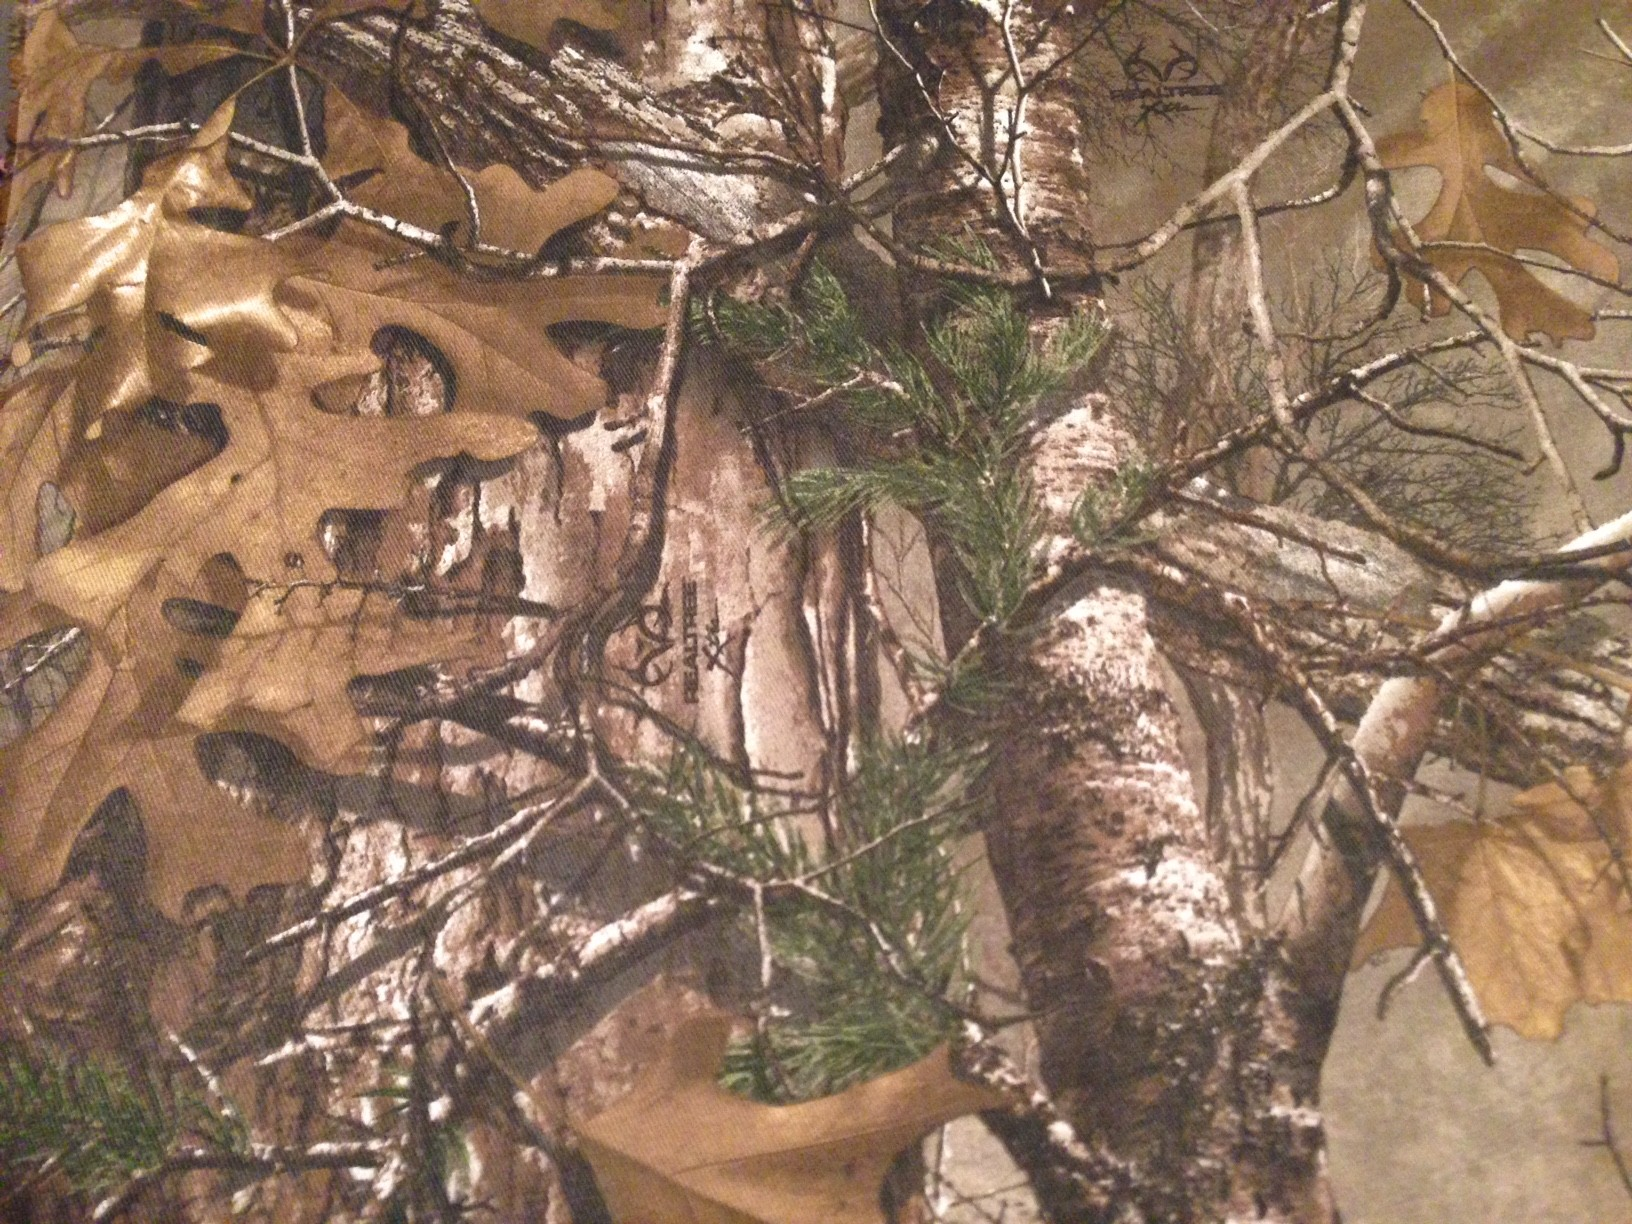 Realtree Xtra Camo Fabric PC Android iPhone and iPad Wallpapers 1632x1224